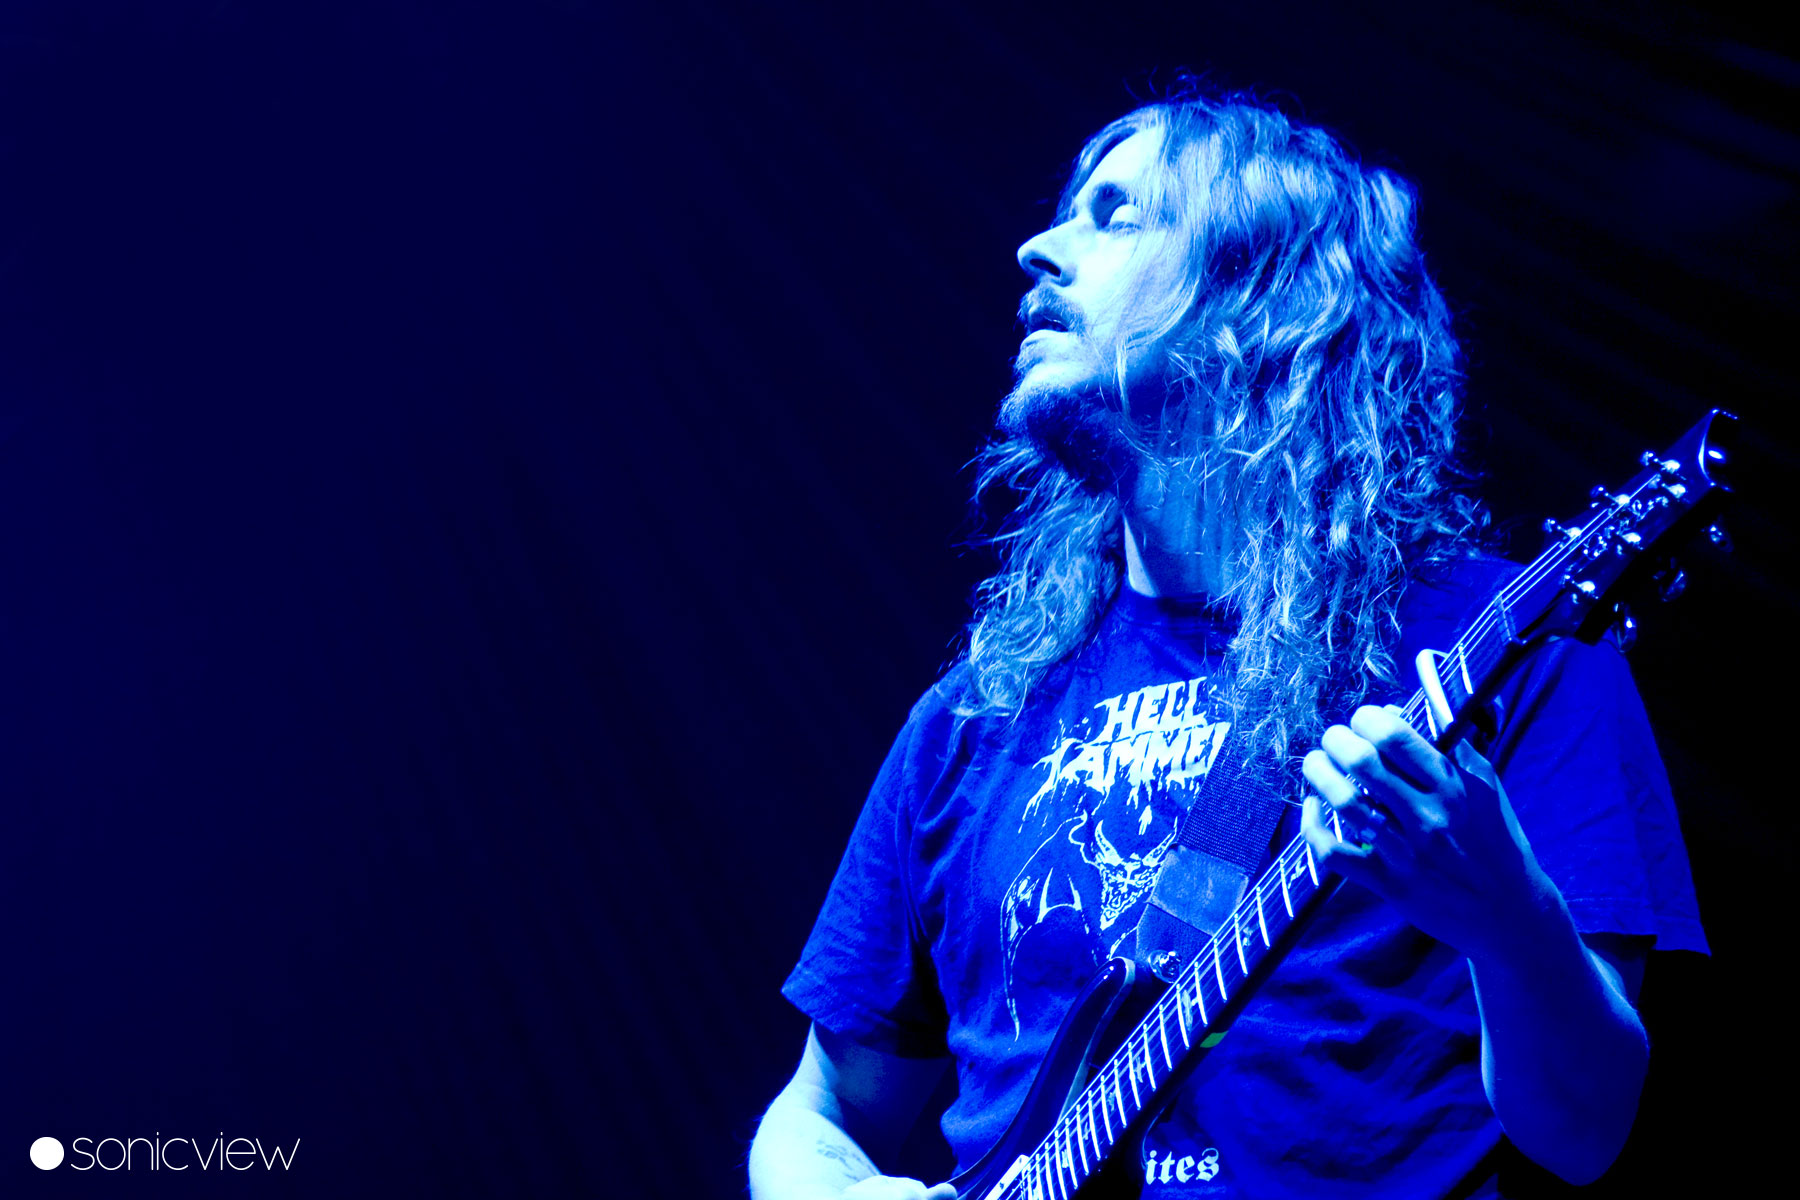 Opeth: Live at KB Hallen 2011, Copenhagen, Denmark